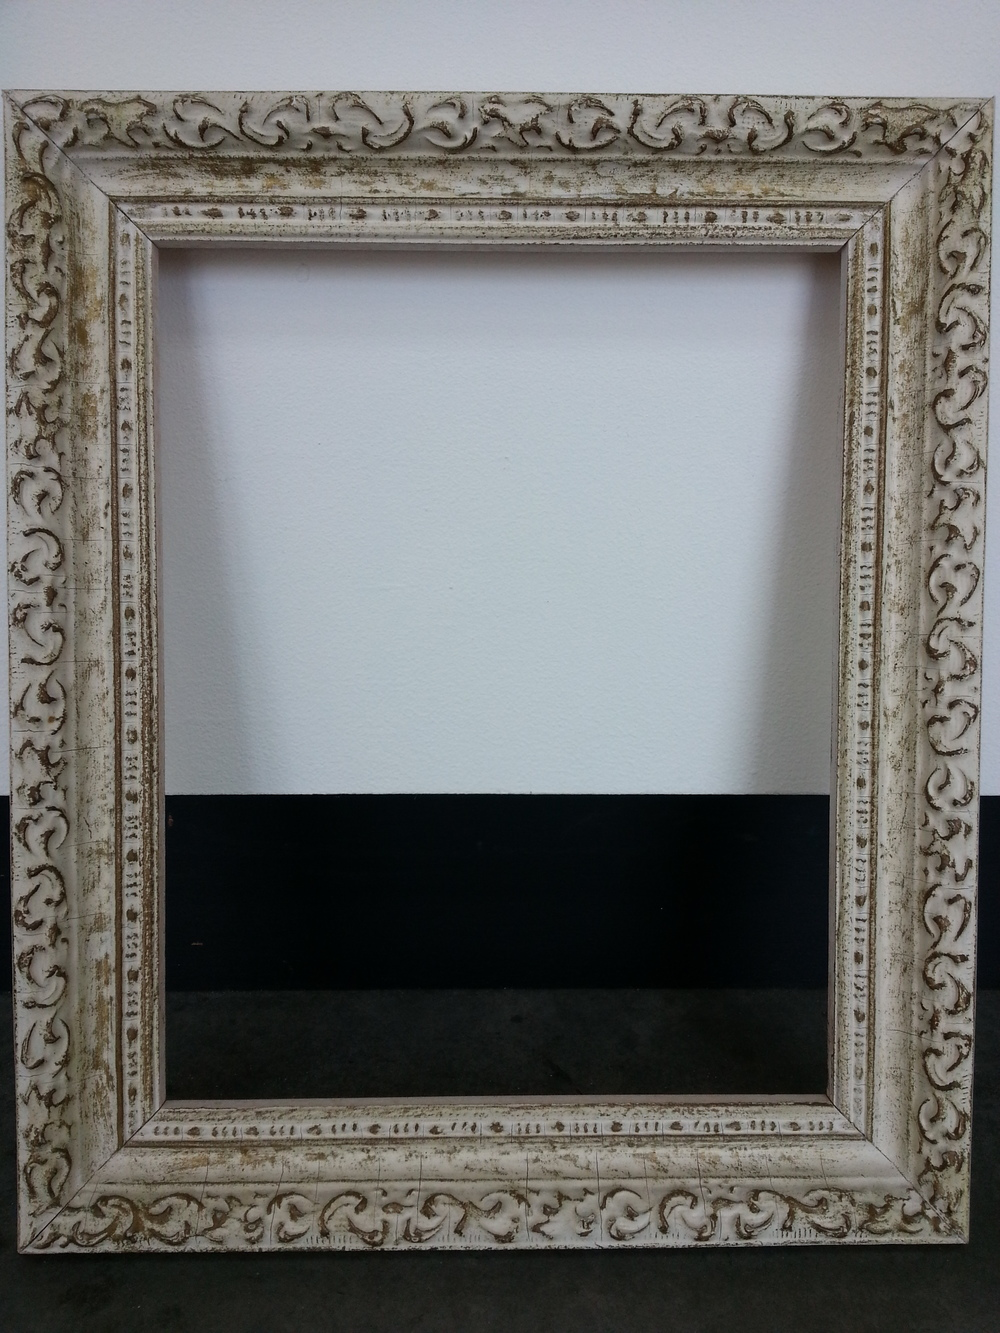 "Vintage Distressed / White Wash Finish Frame R.S. 8"" x 10"" / Frame O.D. 10 1/4"" x 12 1/4"" $80 Available"